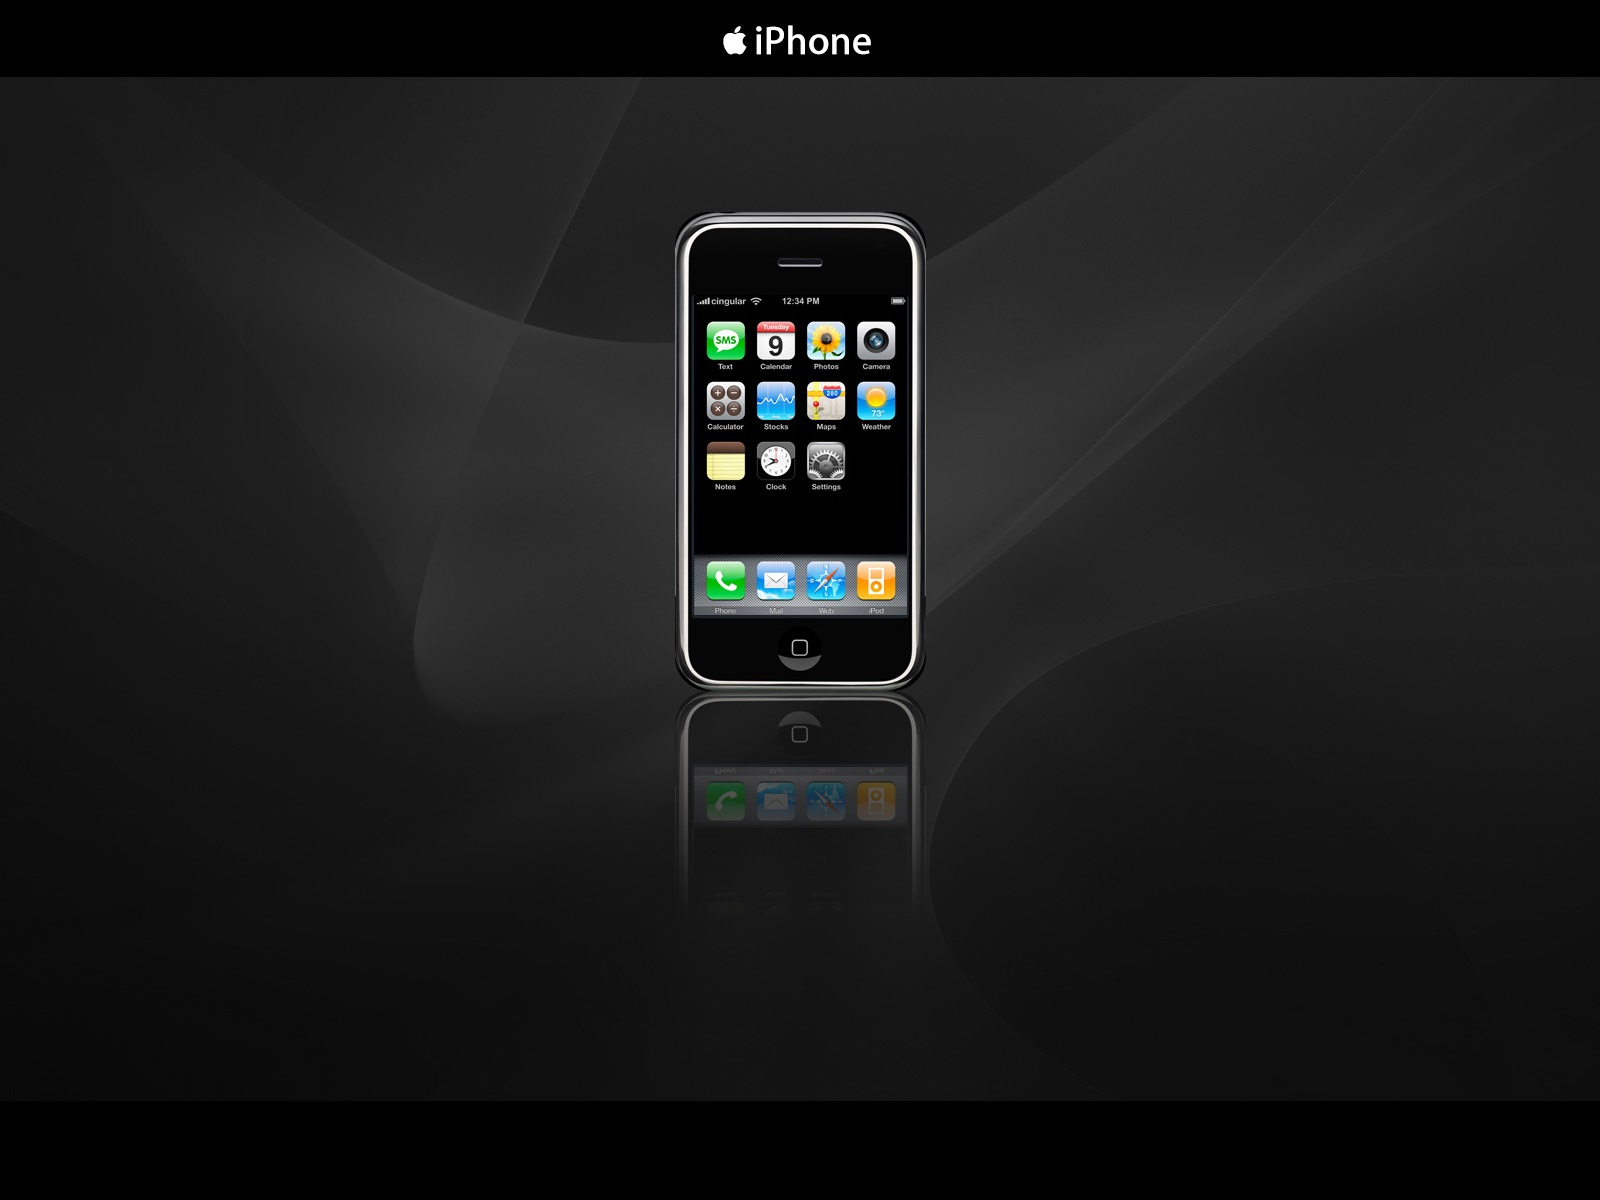 50 most beautiful apple iphone wallpapers gaming - Iphone wallpapers for gamers ...